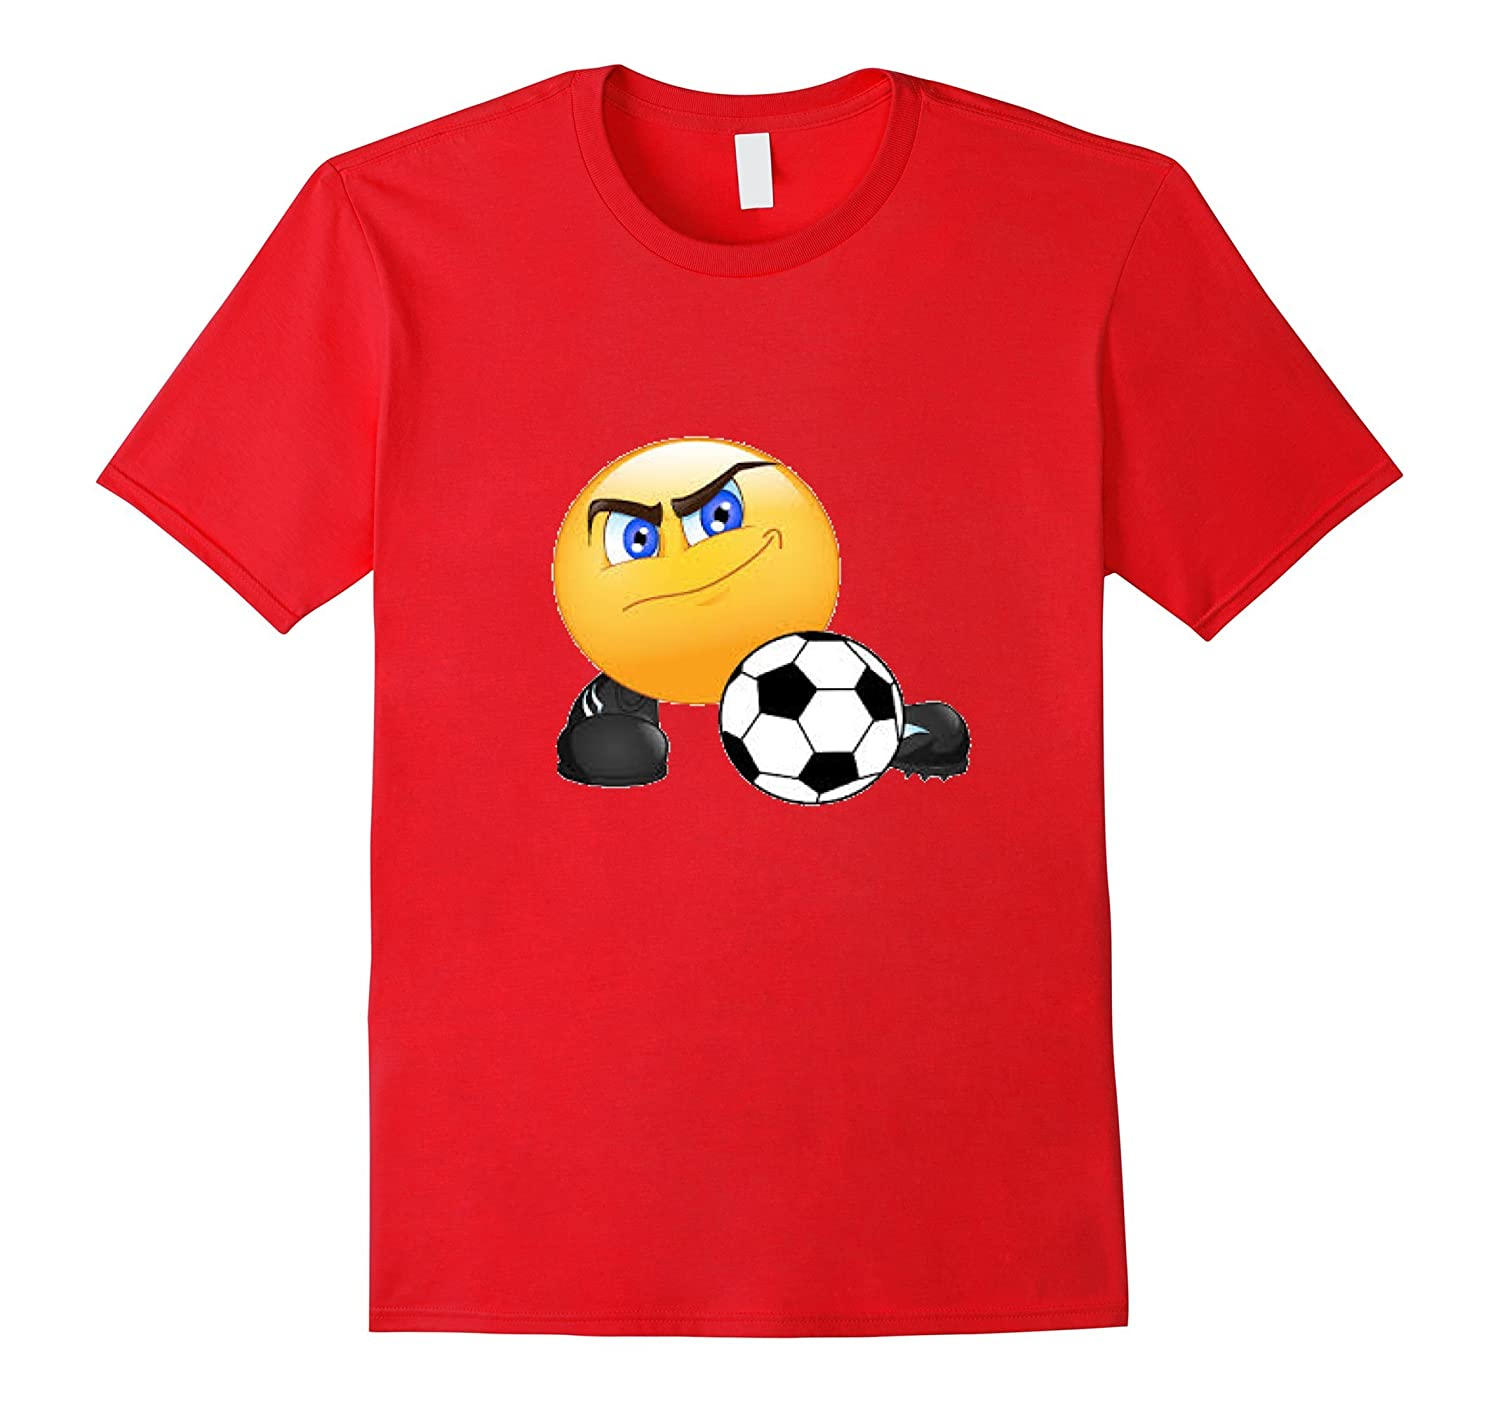 17th Birthday Gift Idea 17 Year Old Boy Girl Shirt 1999 M Art Soccer Playing Smile Emoji T